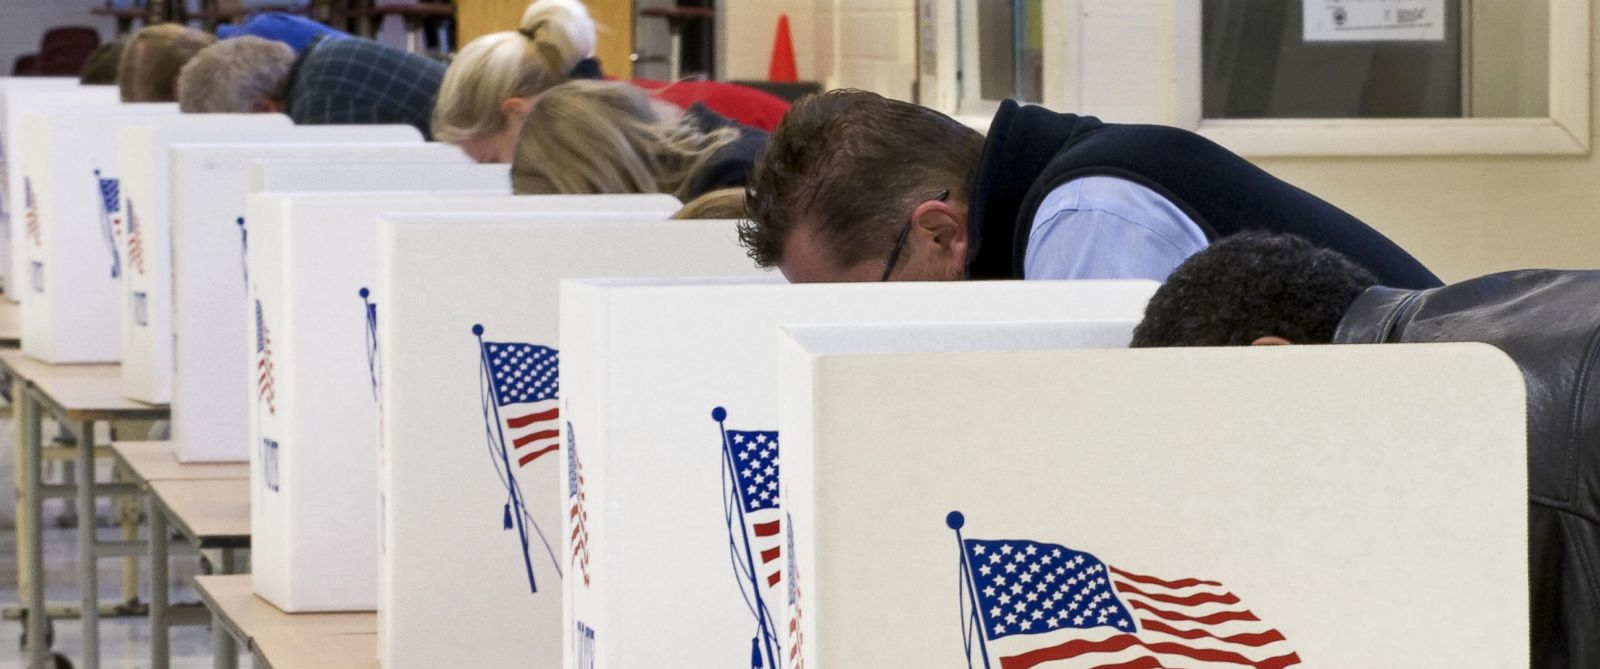 PHOTO: Voters cast their ballots on Election Day, Nov. 4, 2008, at Centreville High School in Clifton, Va.